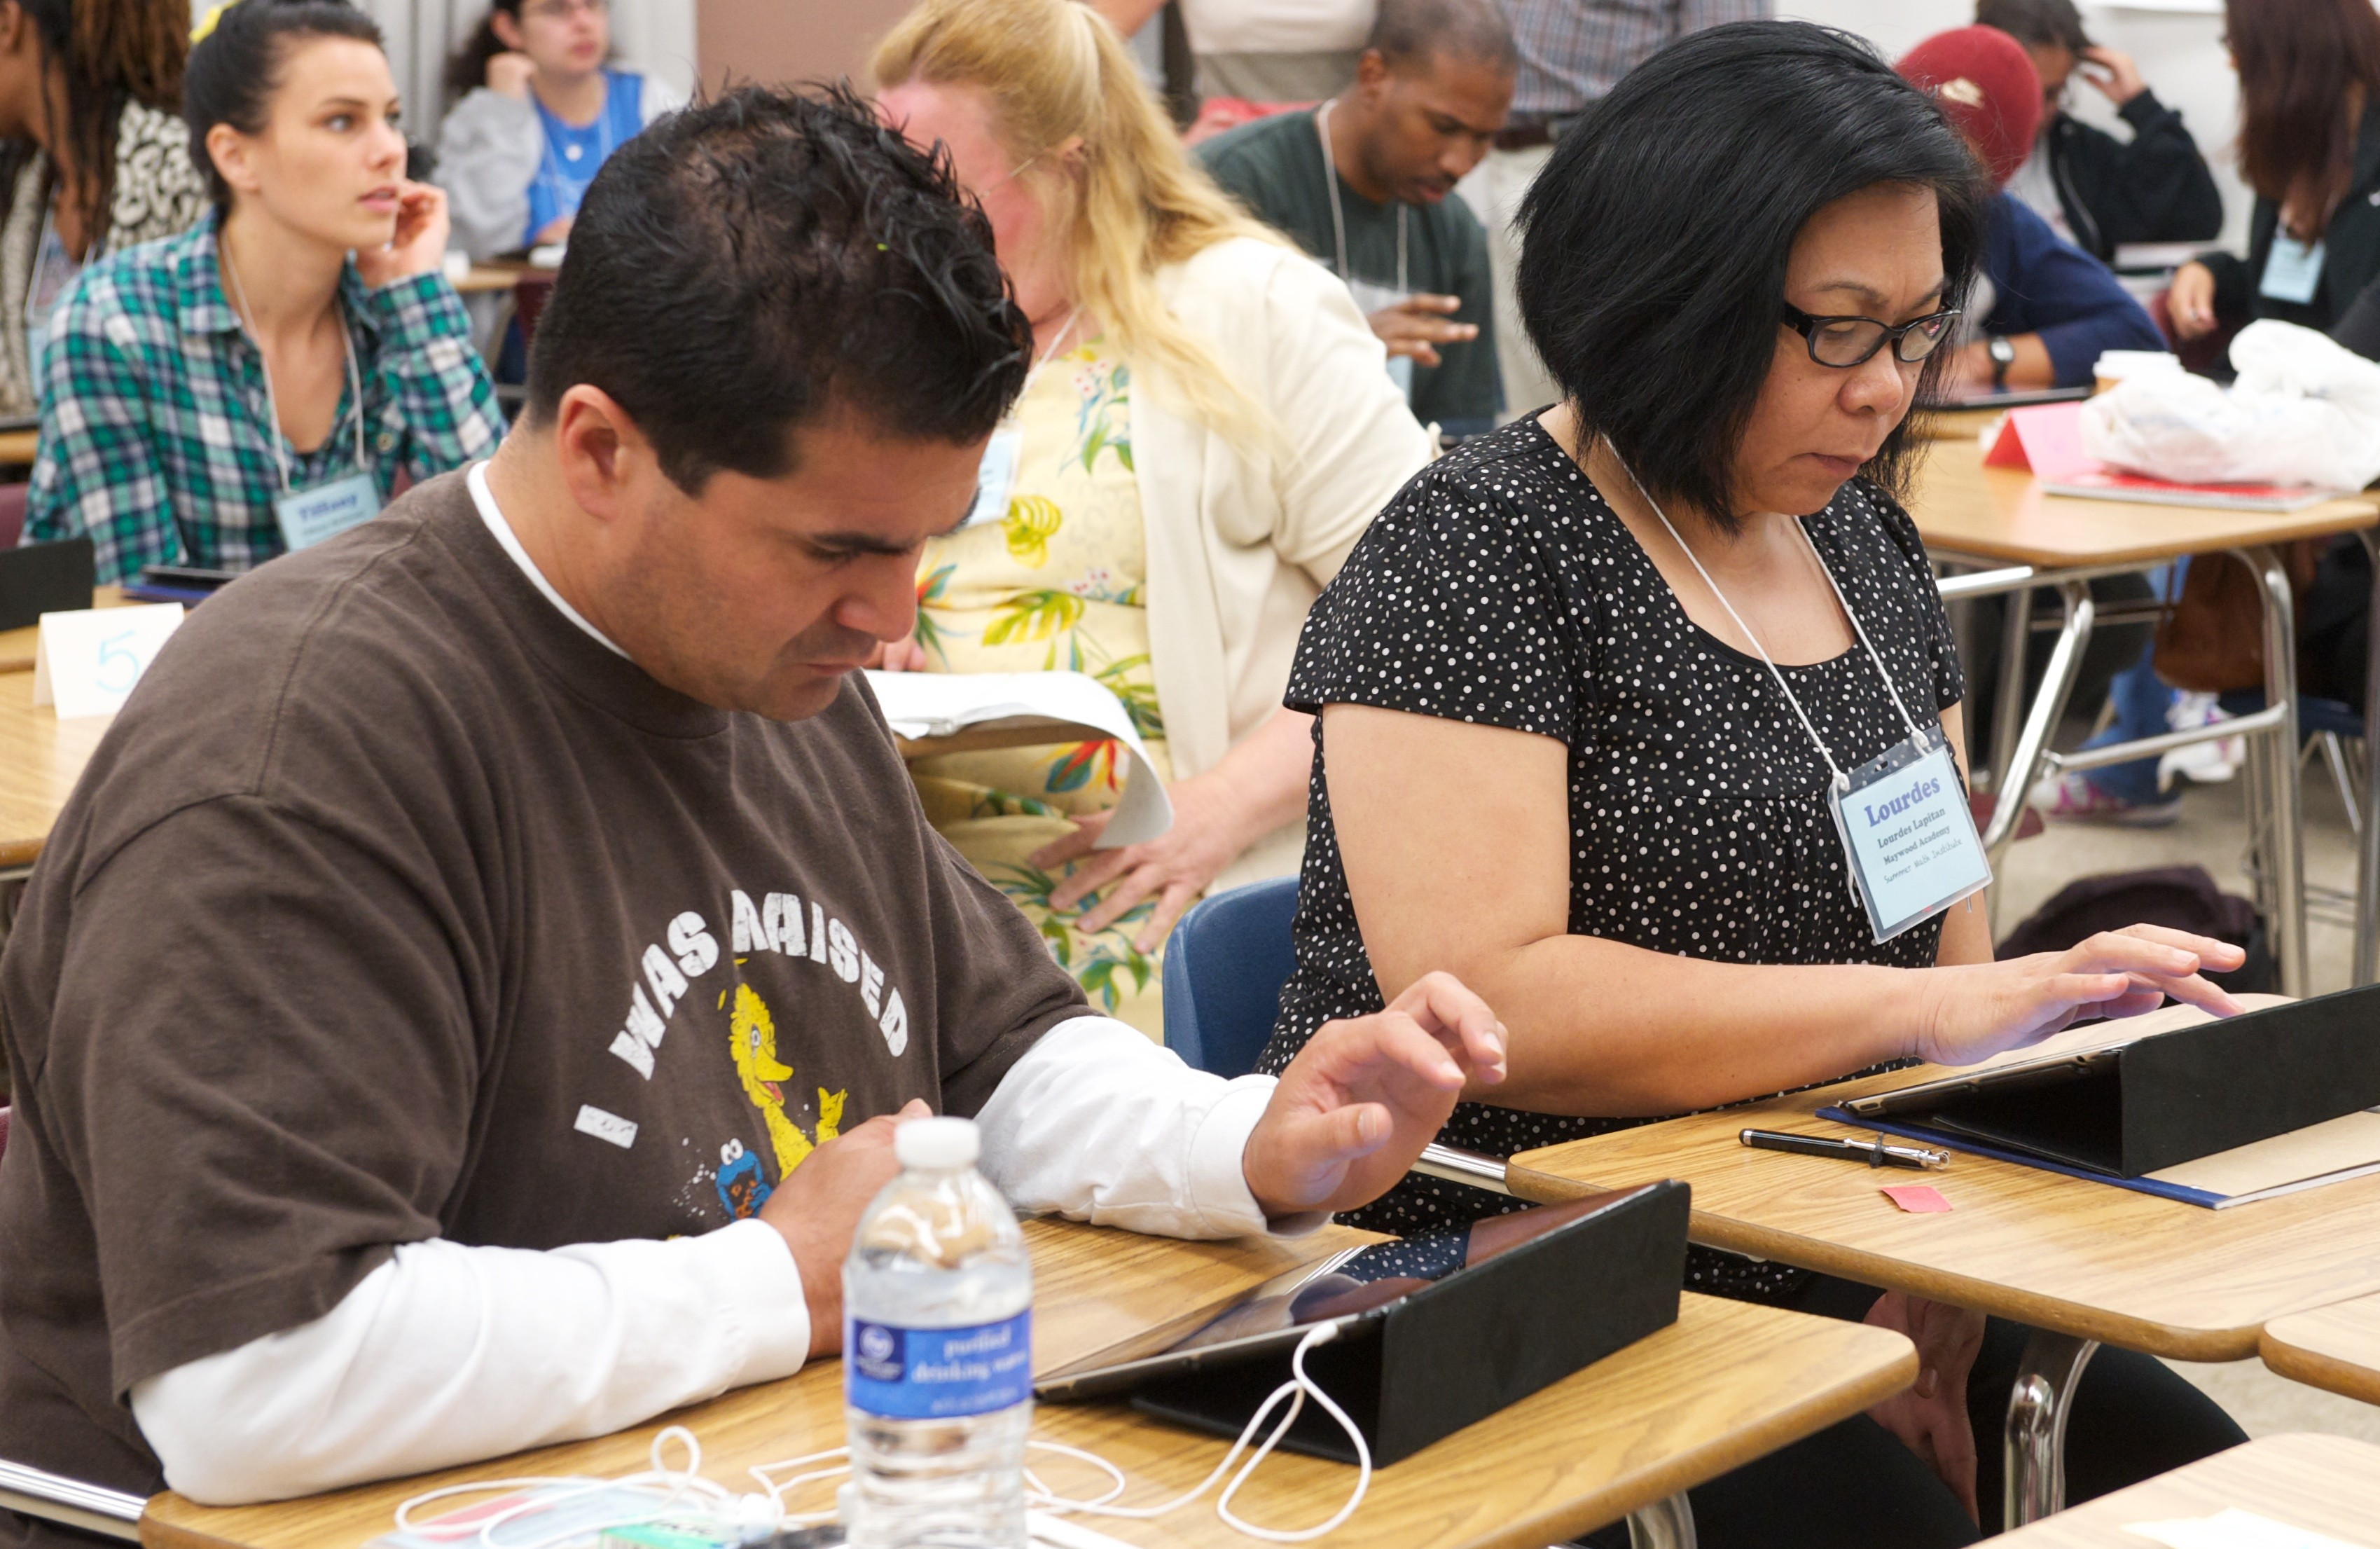 teaching with ipads in the classroom